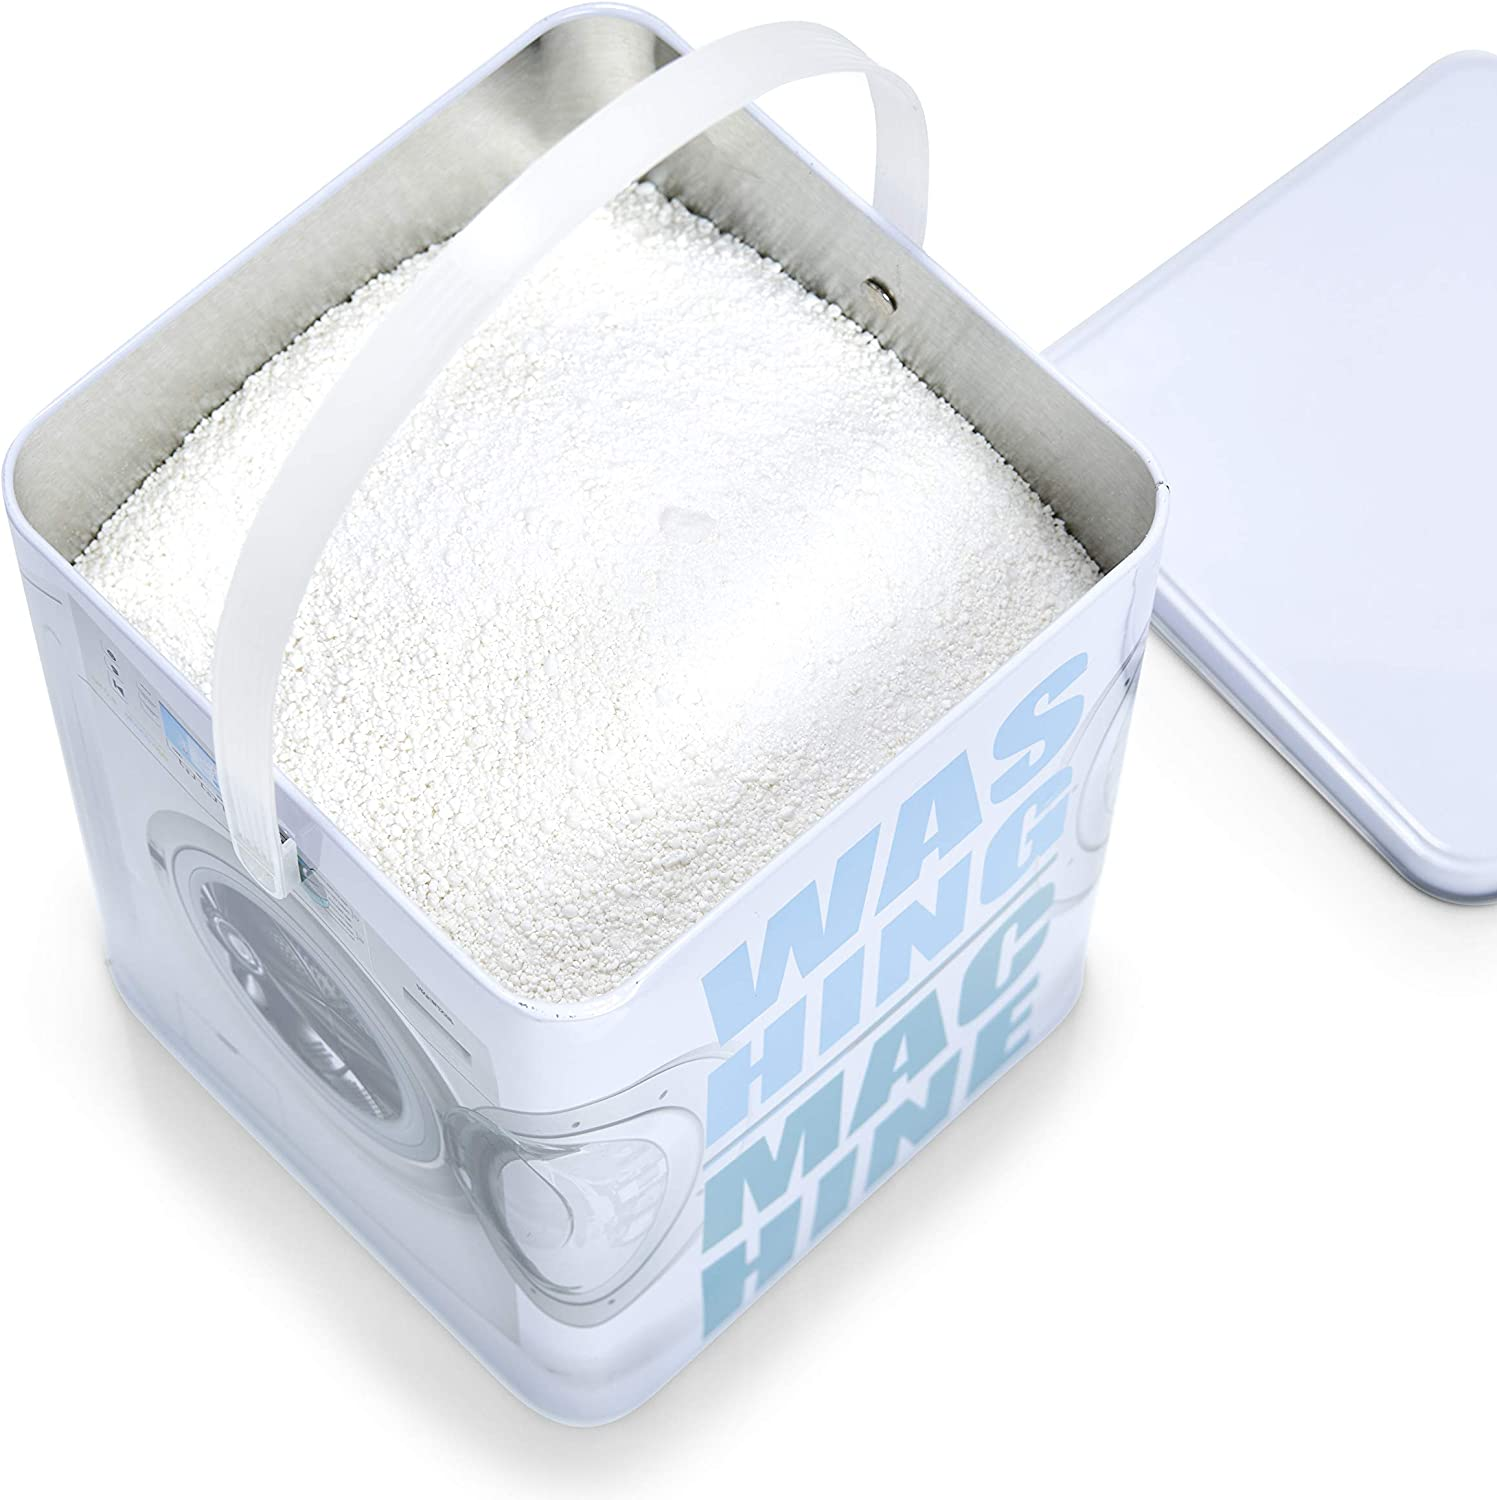 Zeller Washing Machine - Caja para detergente en Polvo (Metal ...